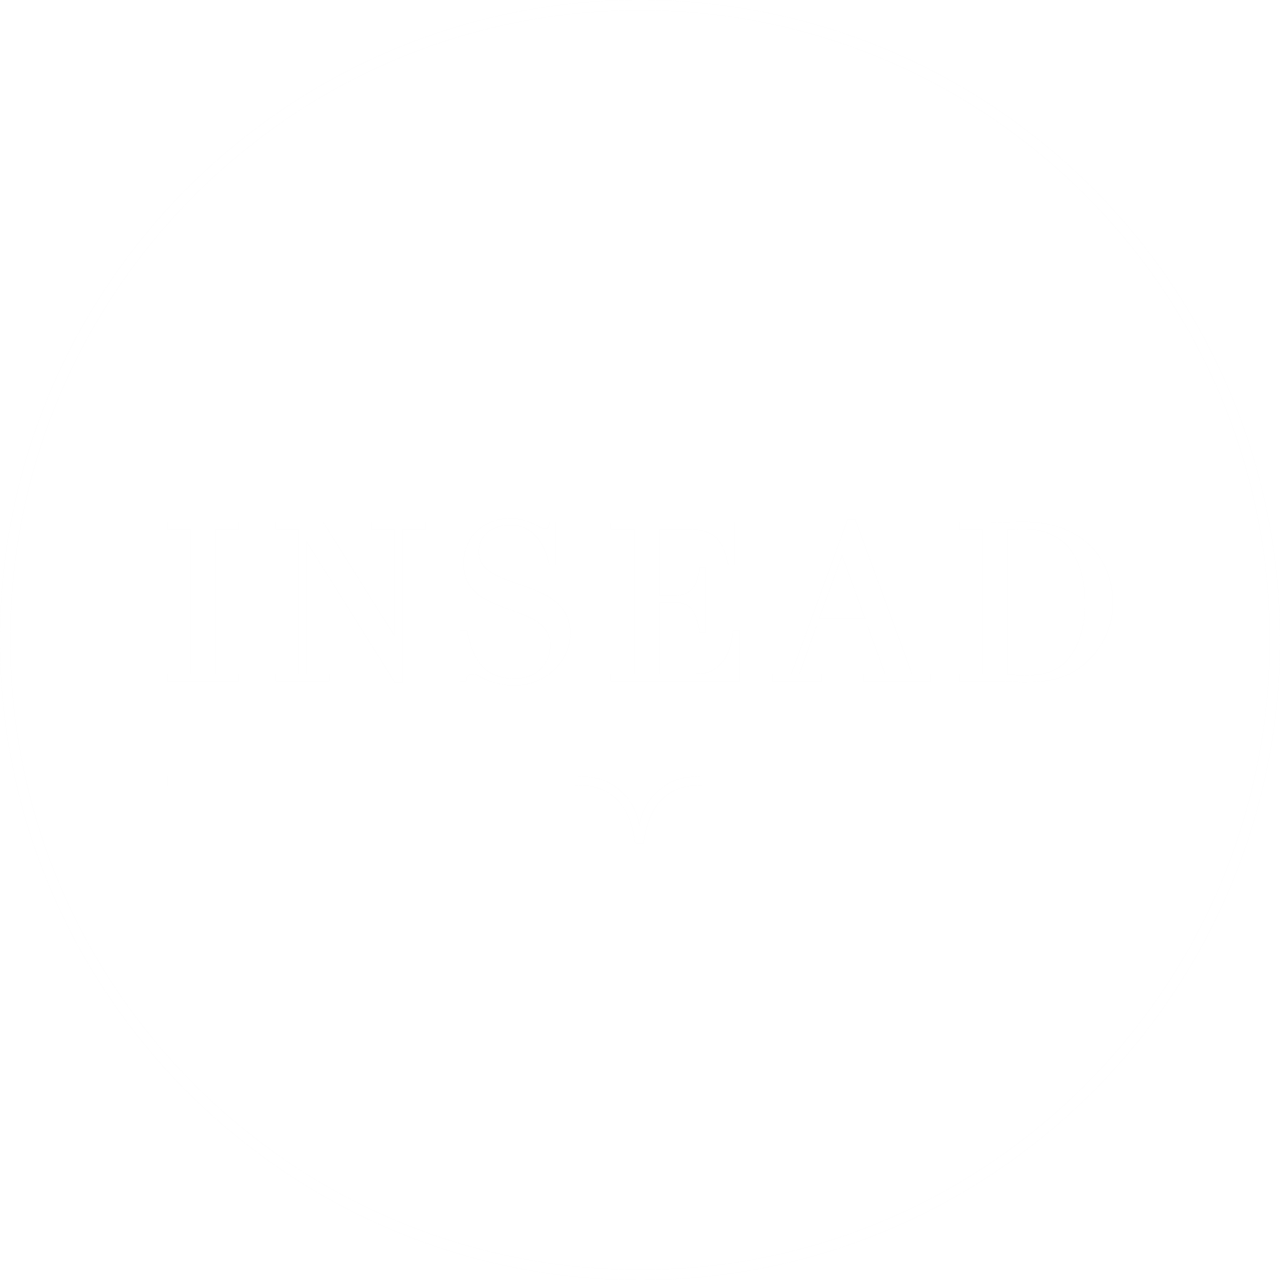 INSEAD Angels of Silicon Valley